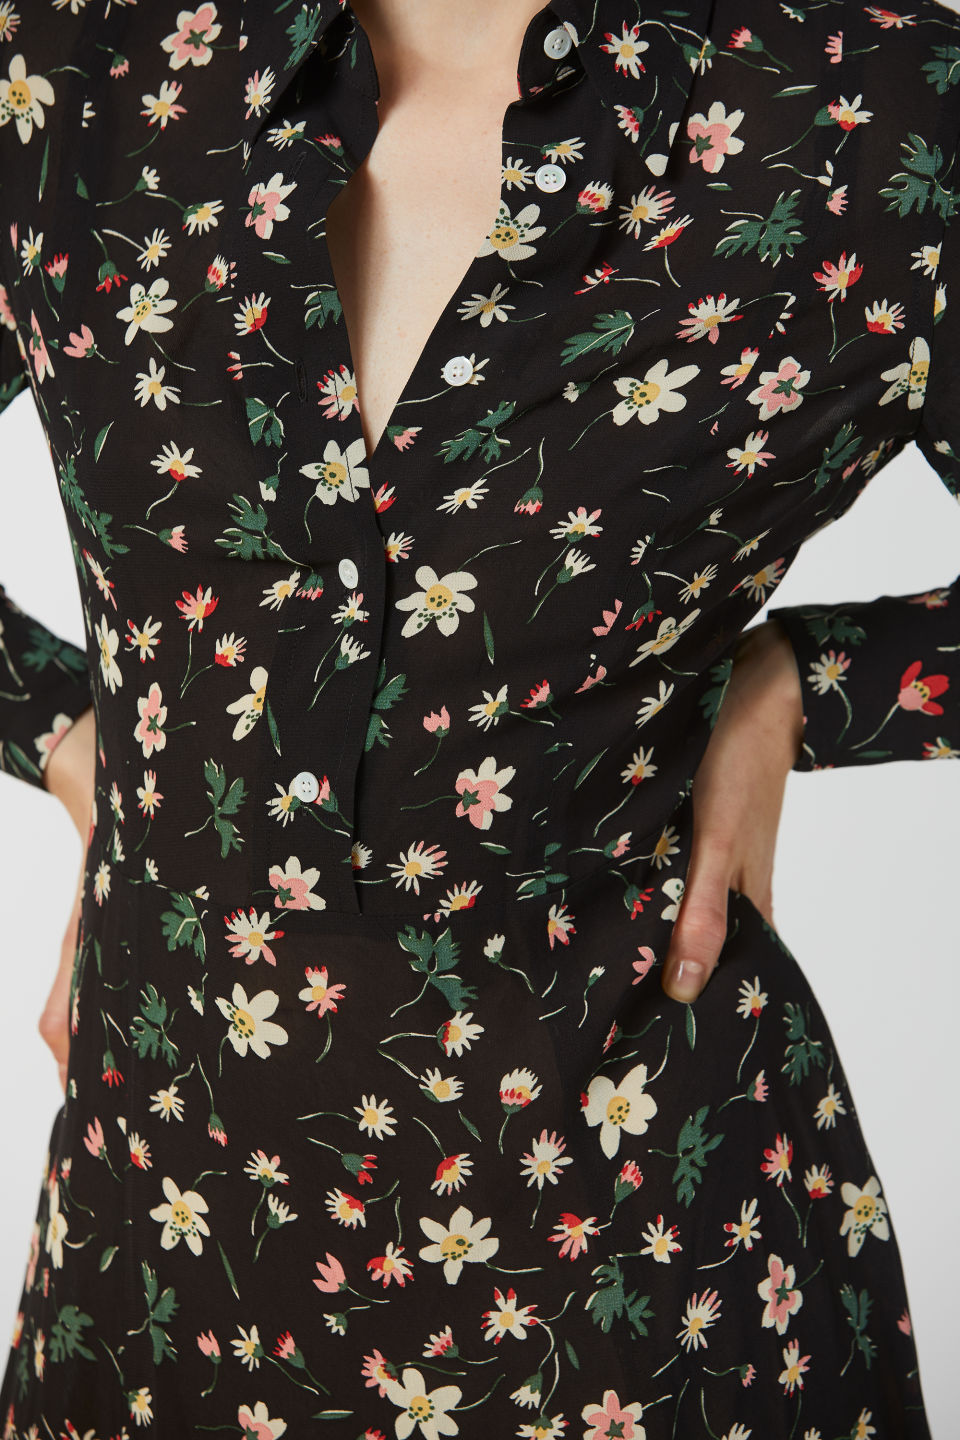 Detailed image of Arket floral print crepe dress in black